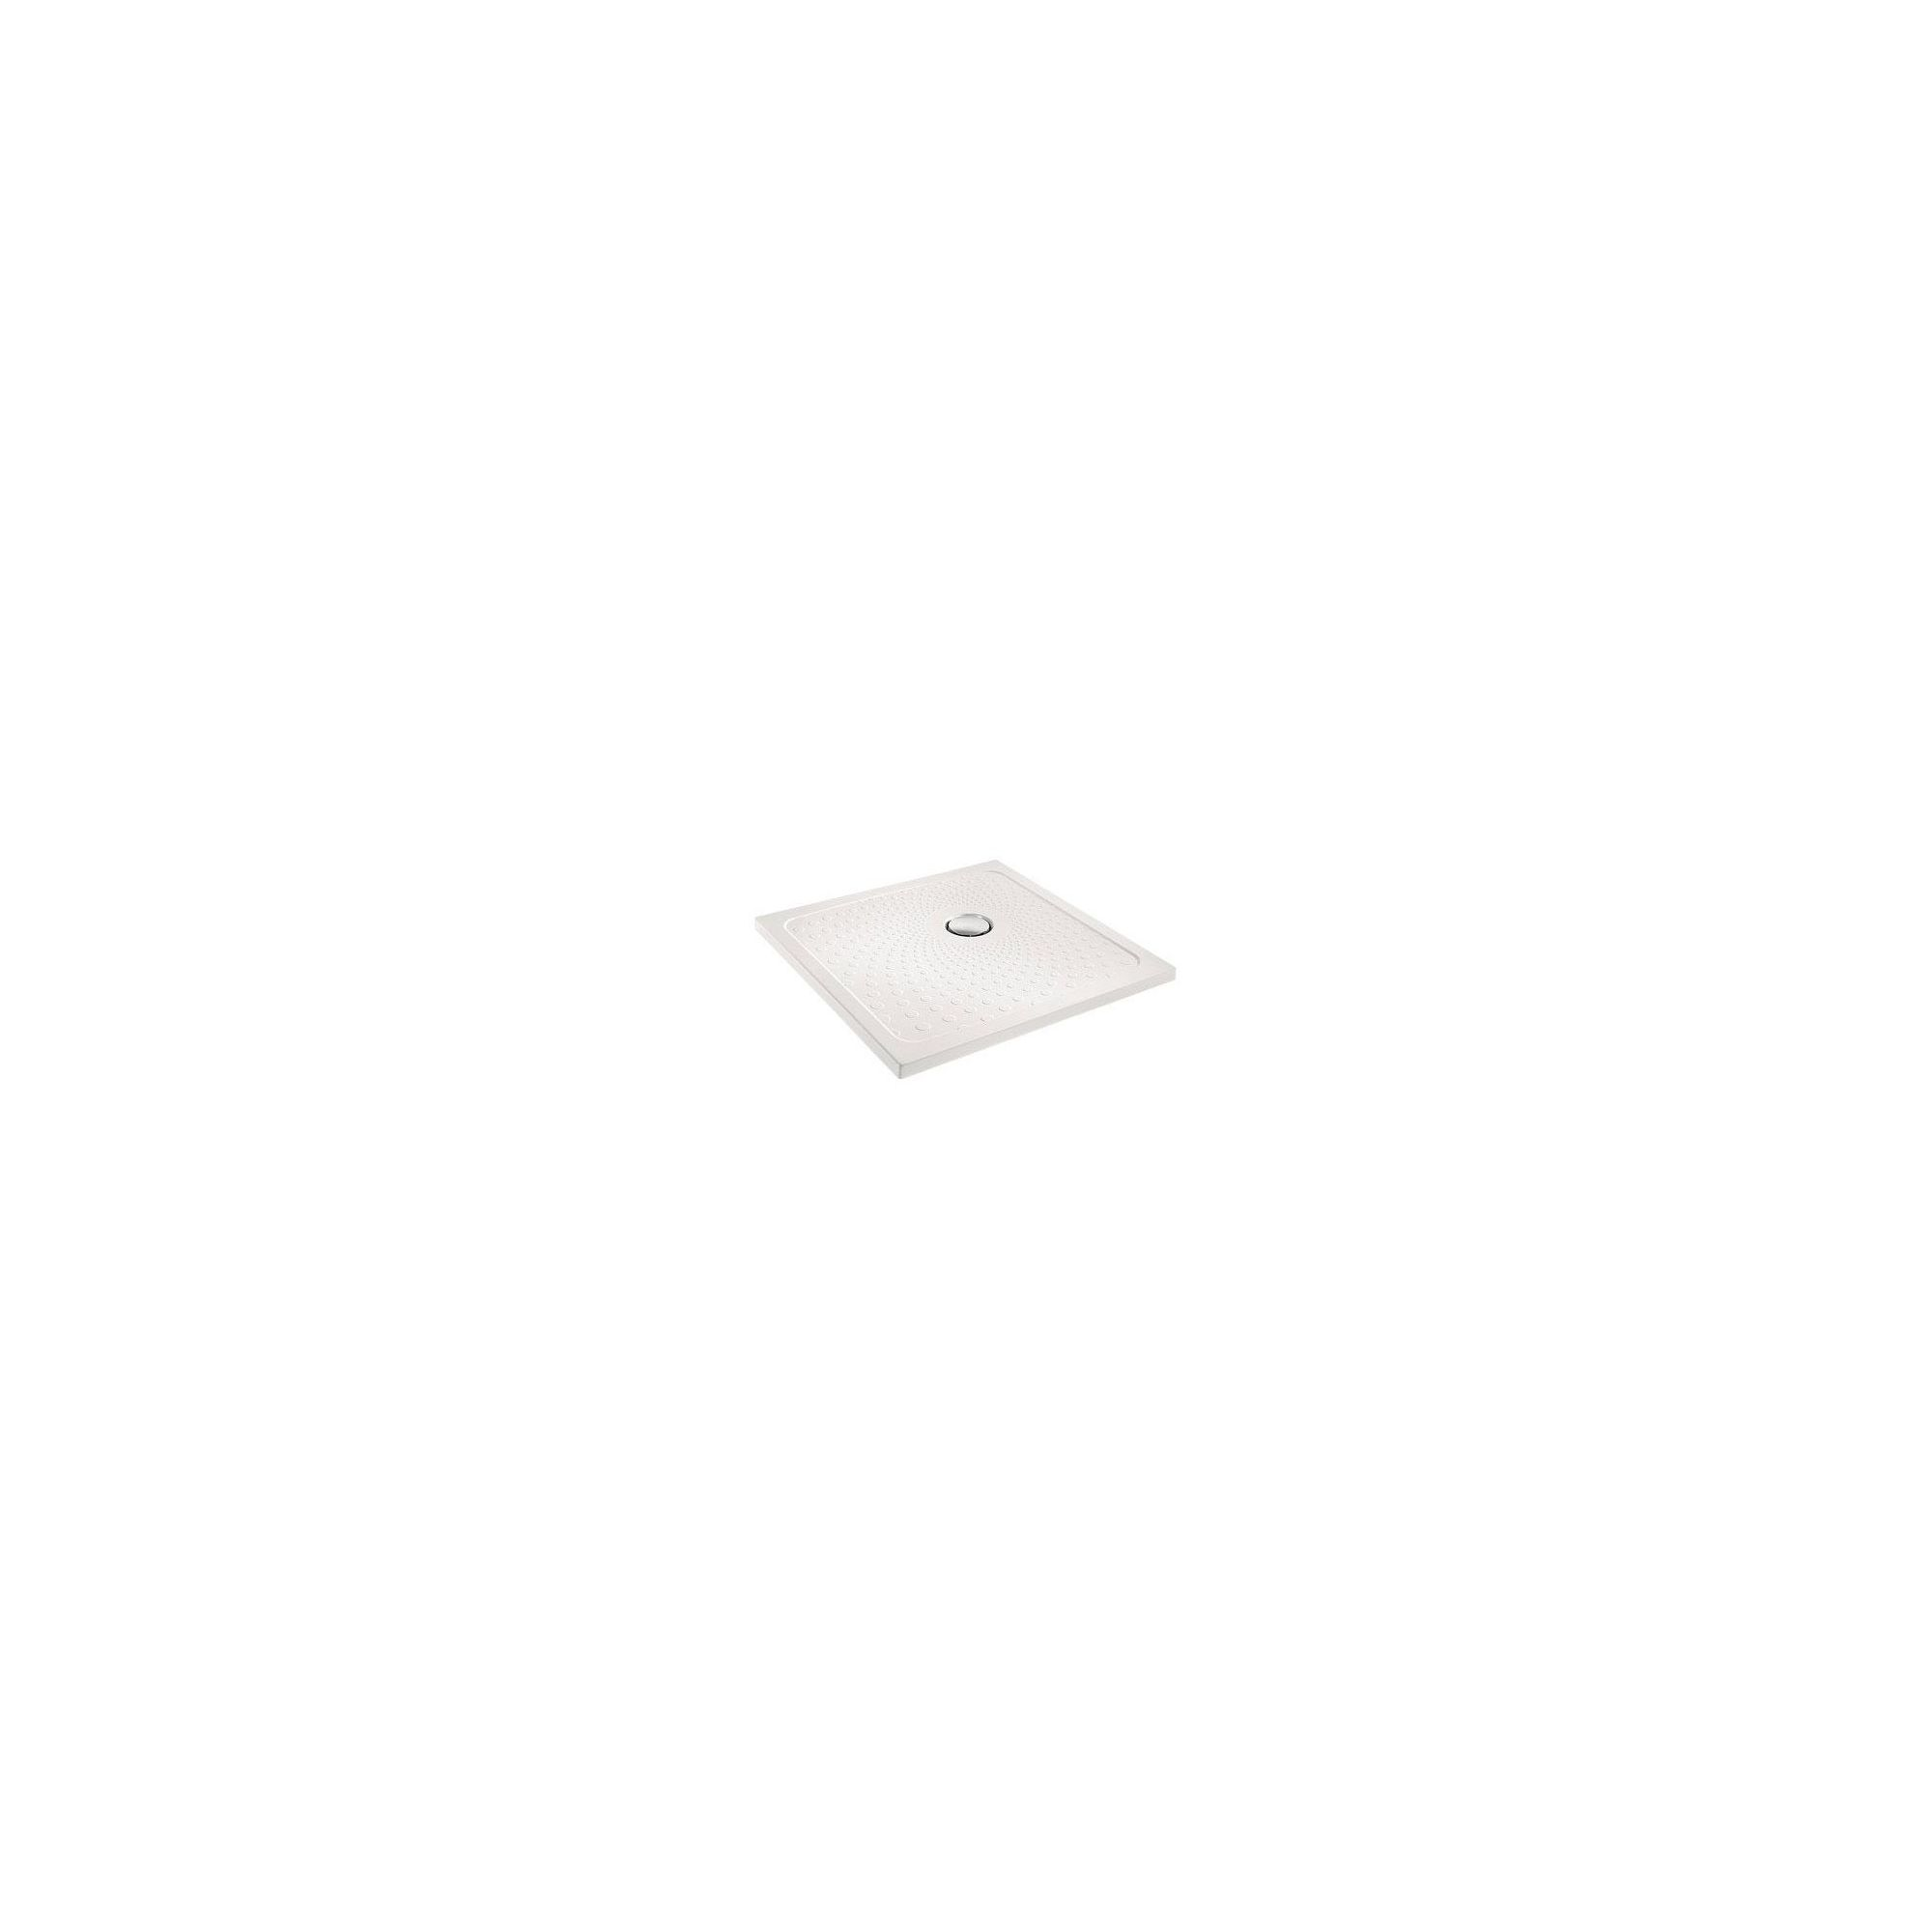 Impey Slimline 35 Showertray 1000mm x 1000mm at Tesco Direct